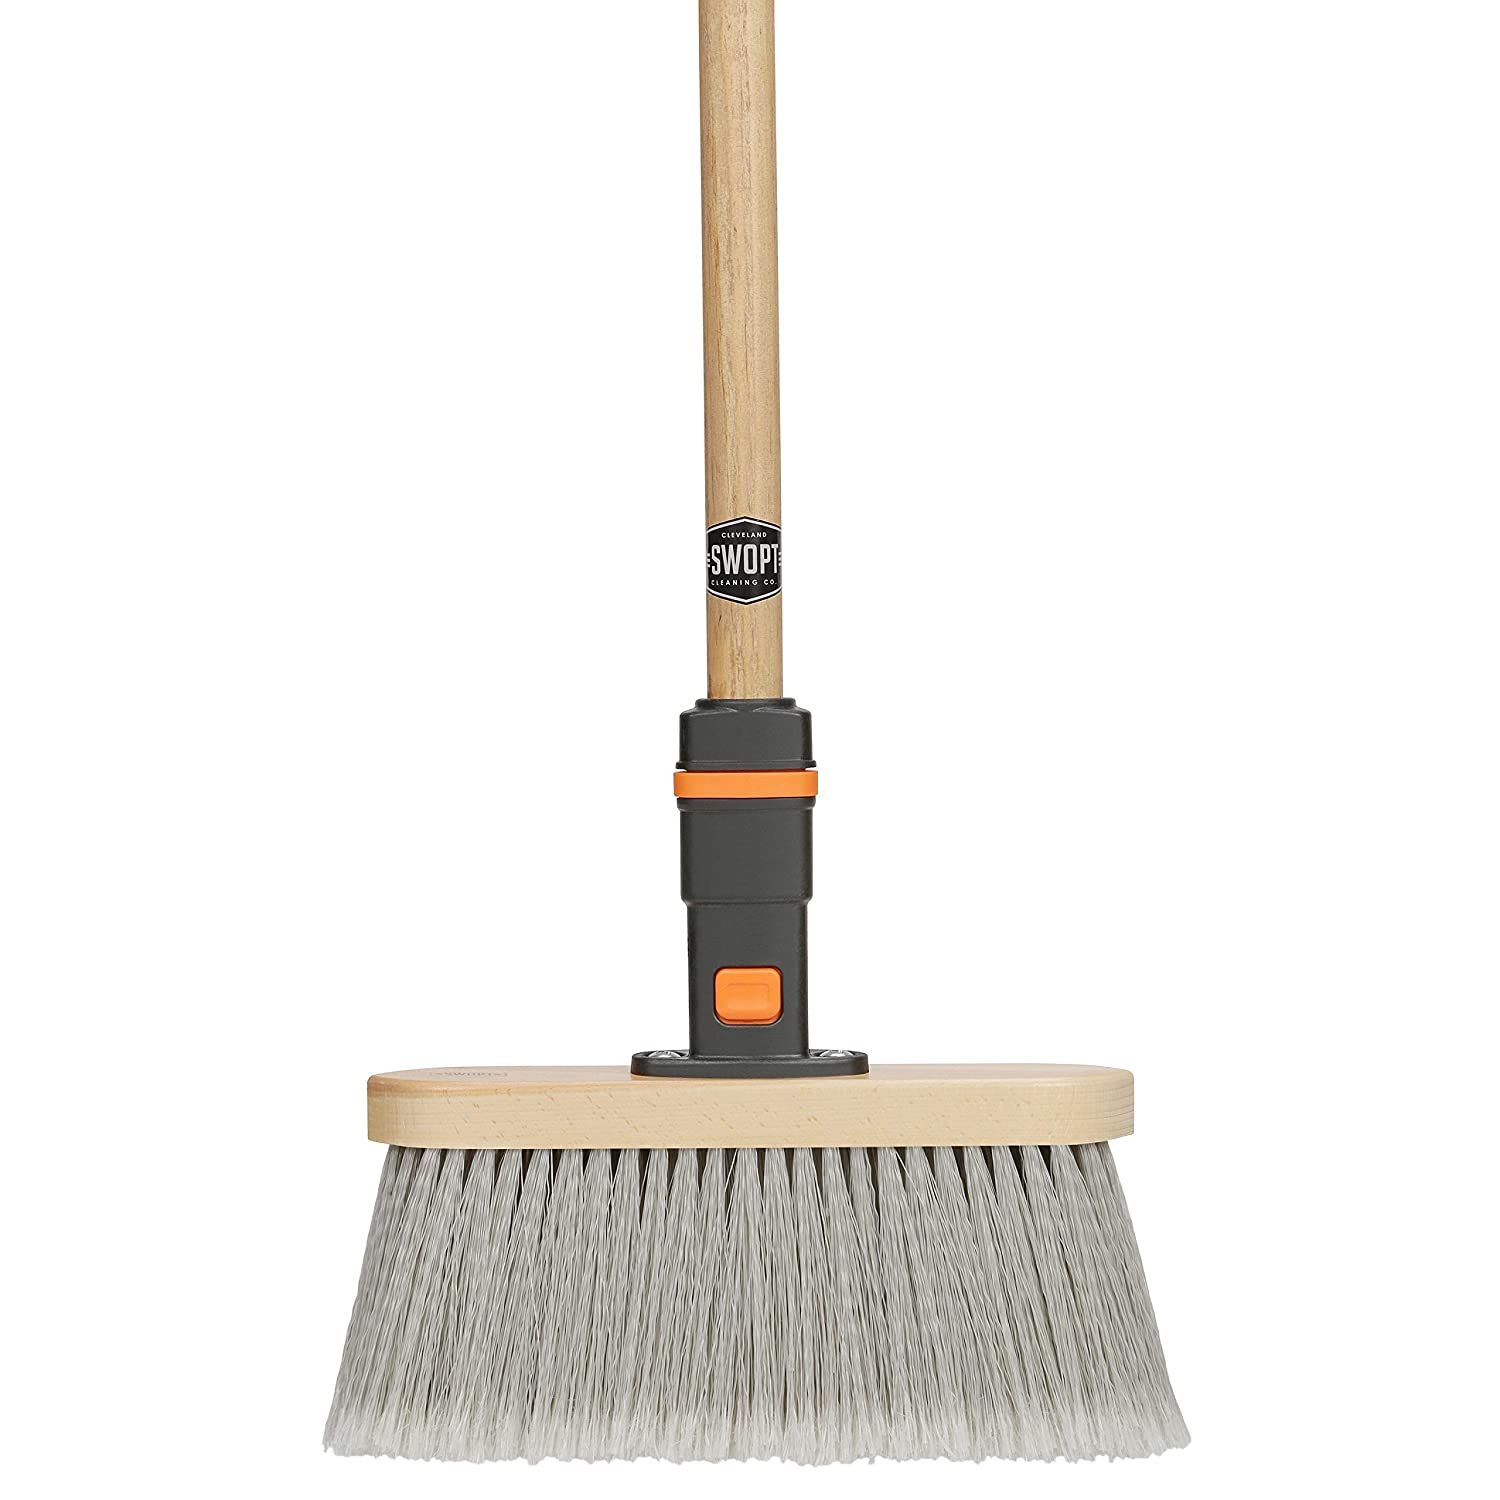 SWOPT Premium Straight Broom for Smooth Surfaces – 48